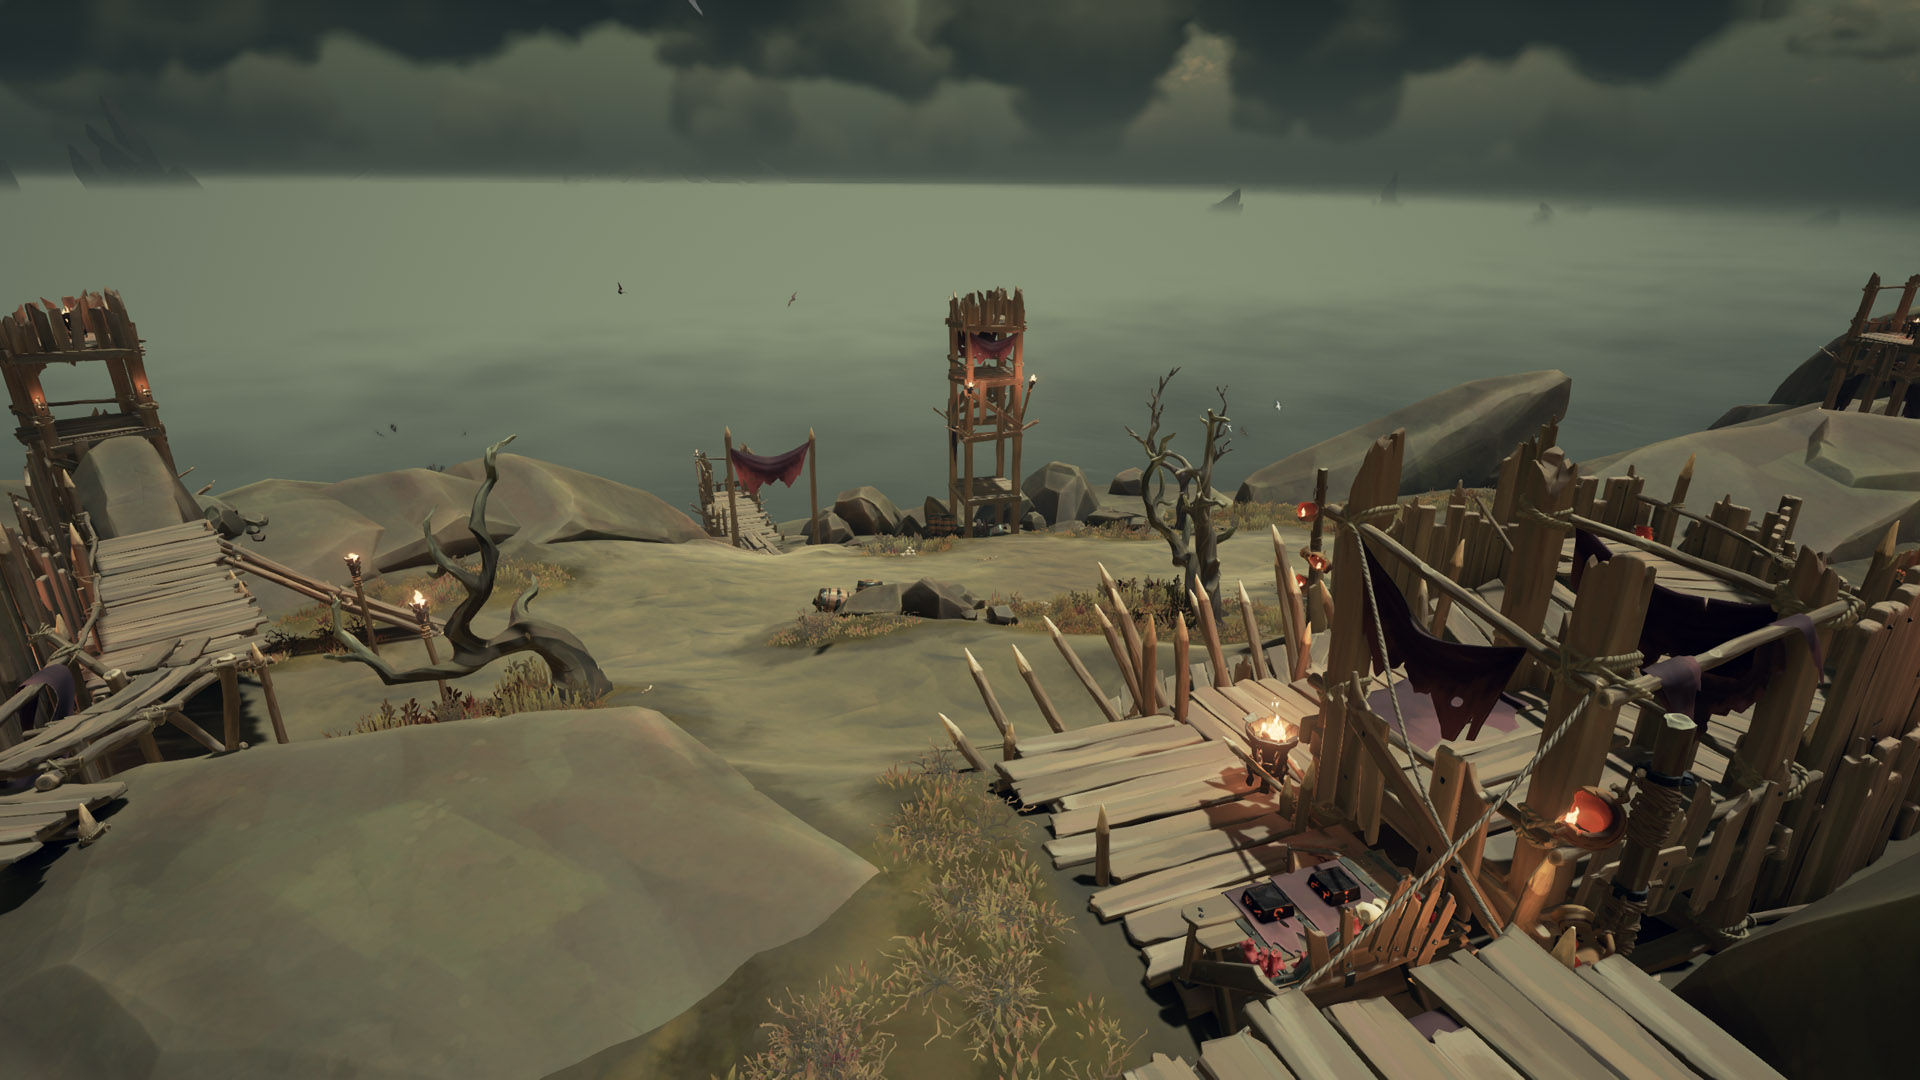 sea of thieves old faithful riddle platform burning fires